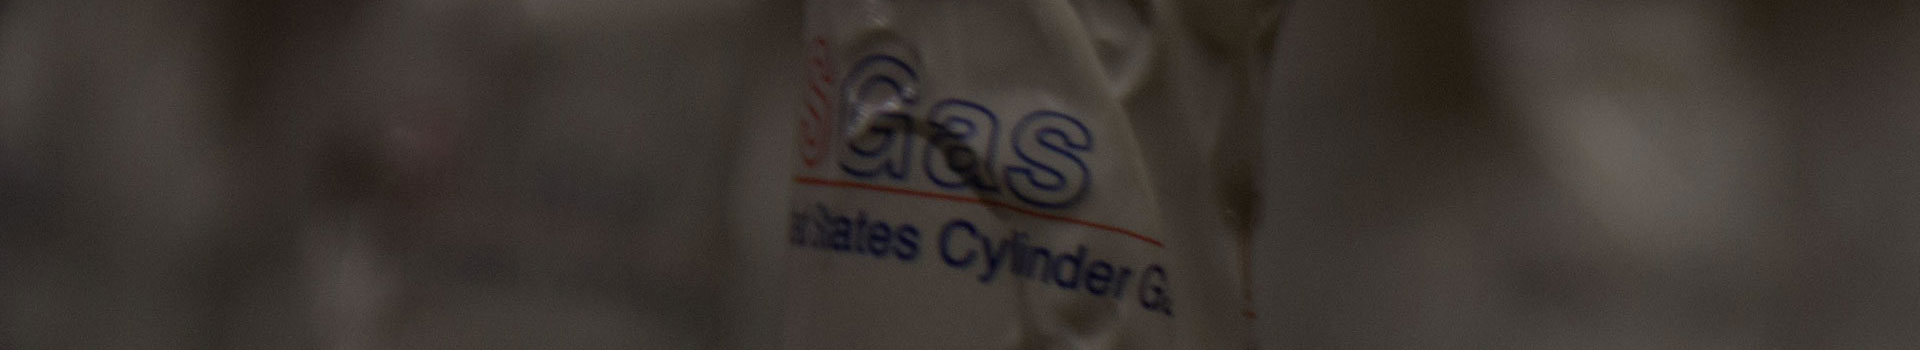 US Gas - United States Cylinder Gas